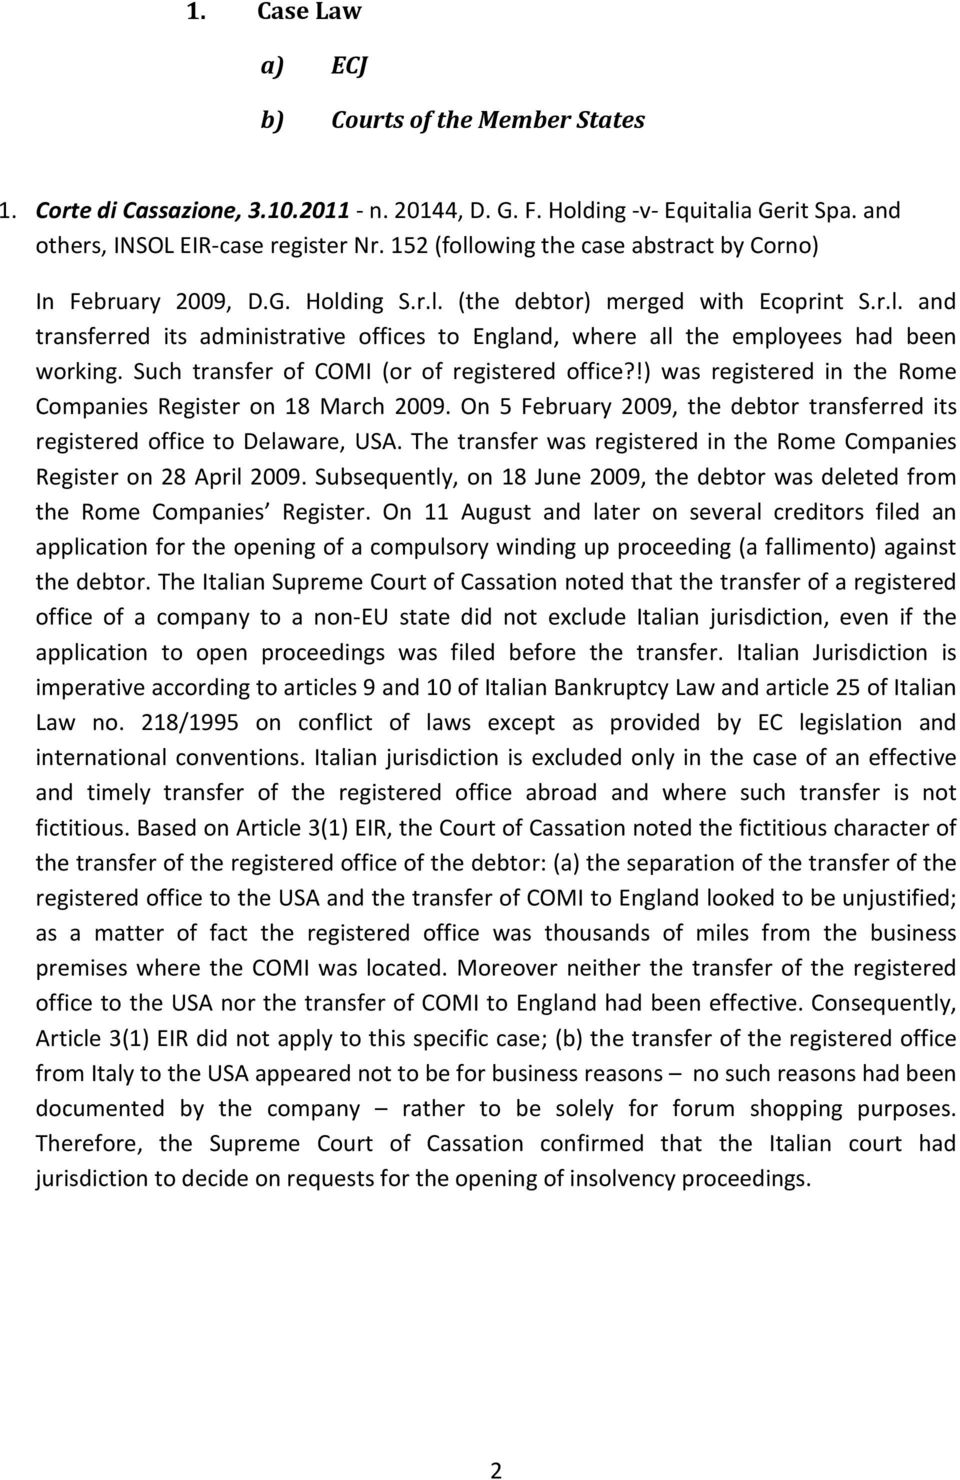 Such transfer of COMI (or of registered office?!) was registered in the Rome Companies Register on 18 March 2009. On 5 February 2009, the debtor transferred its registered office to Delaware, USA.